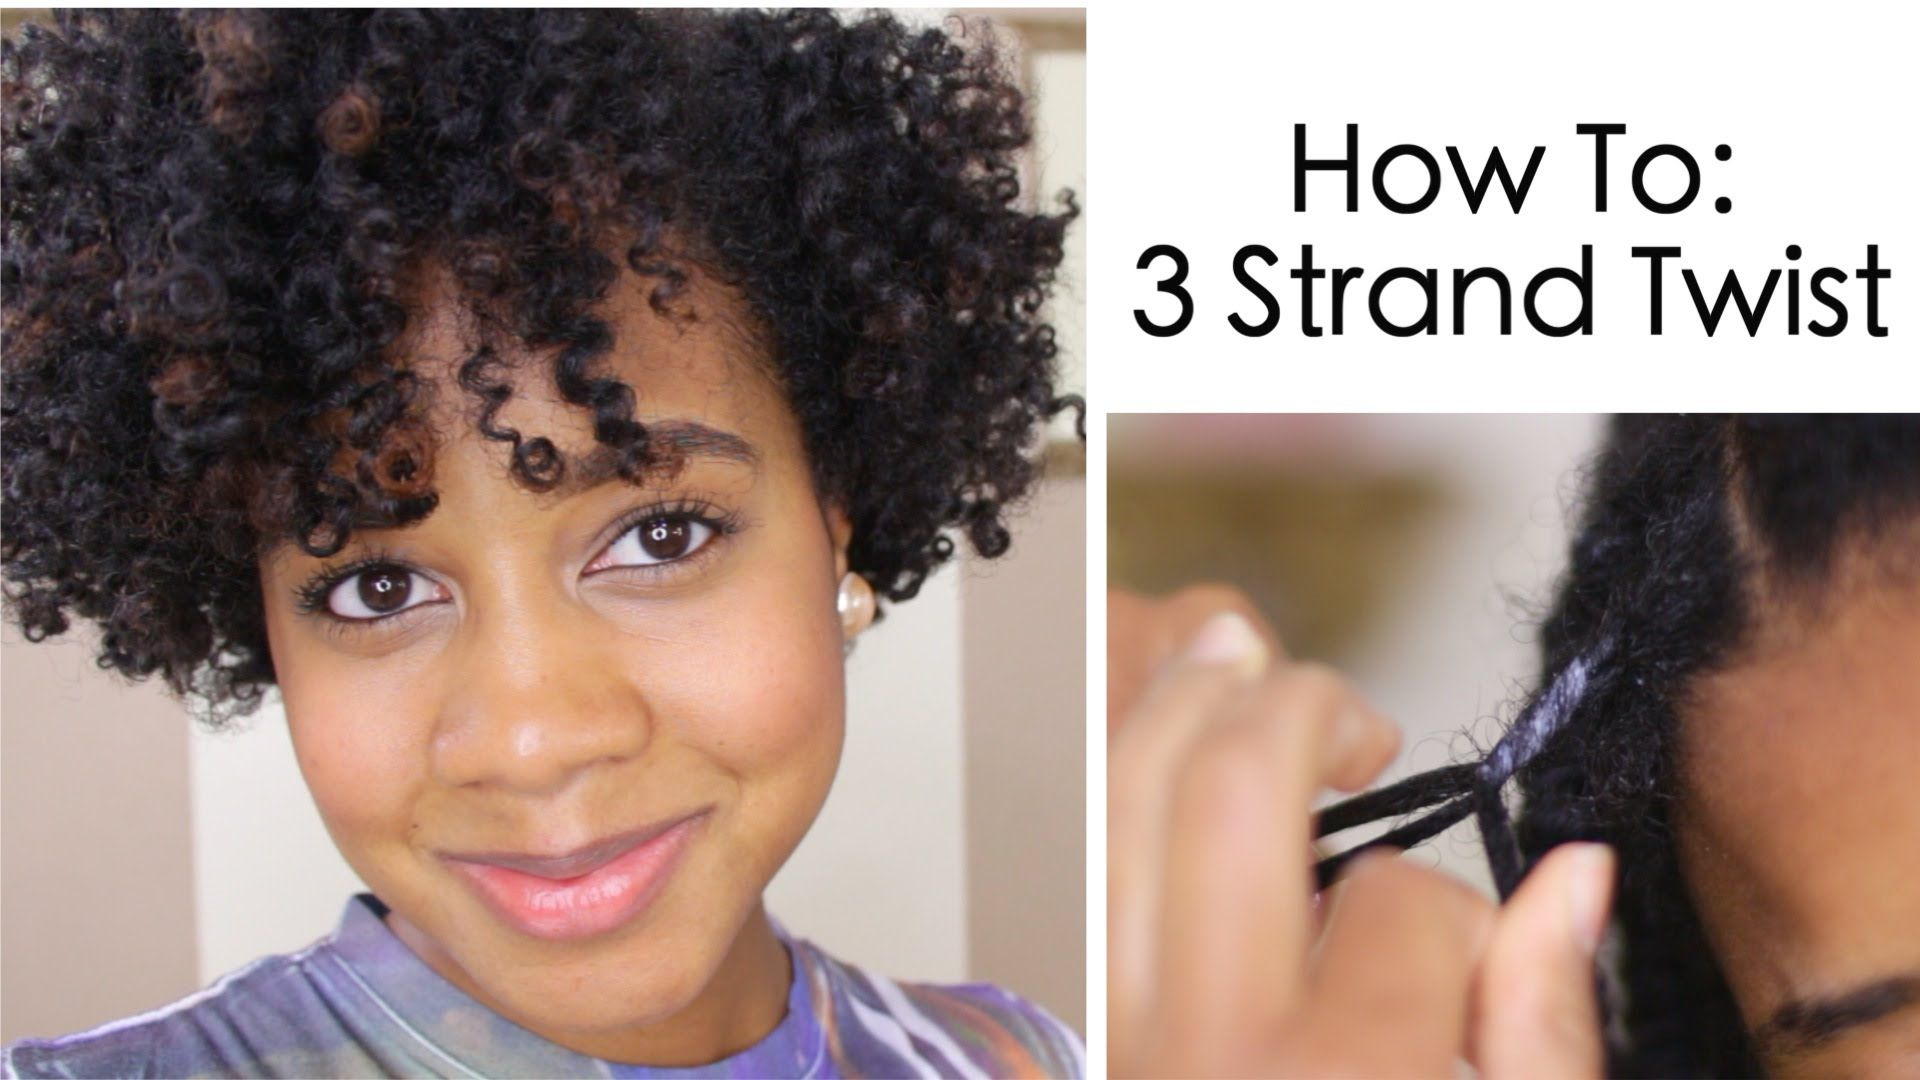 Here s a natural hair tutorial on how to 3 strand twist and a 3